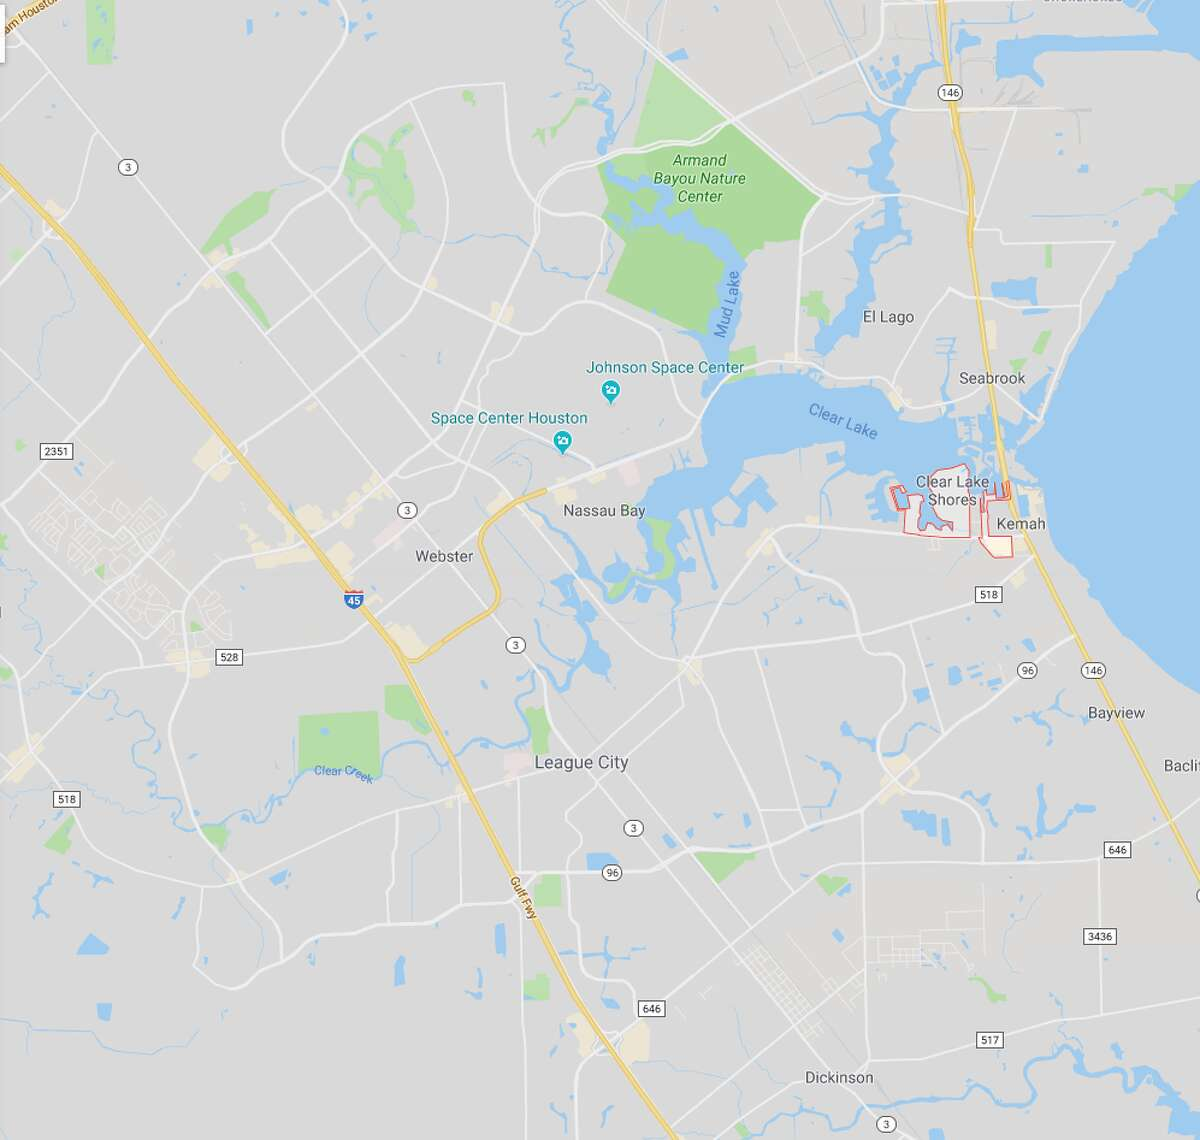 """Clear Lake Shores Overall Niche Grade: A+ Population: 1,249 Median Home Value: $106,563 Crime and Safety: Not given Housing: A """"Clear Lake Shores is a small, tight-knit community where you can live and feel safe. """""""